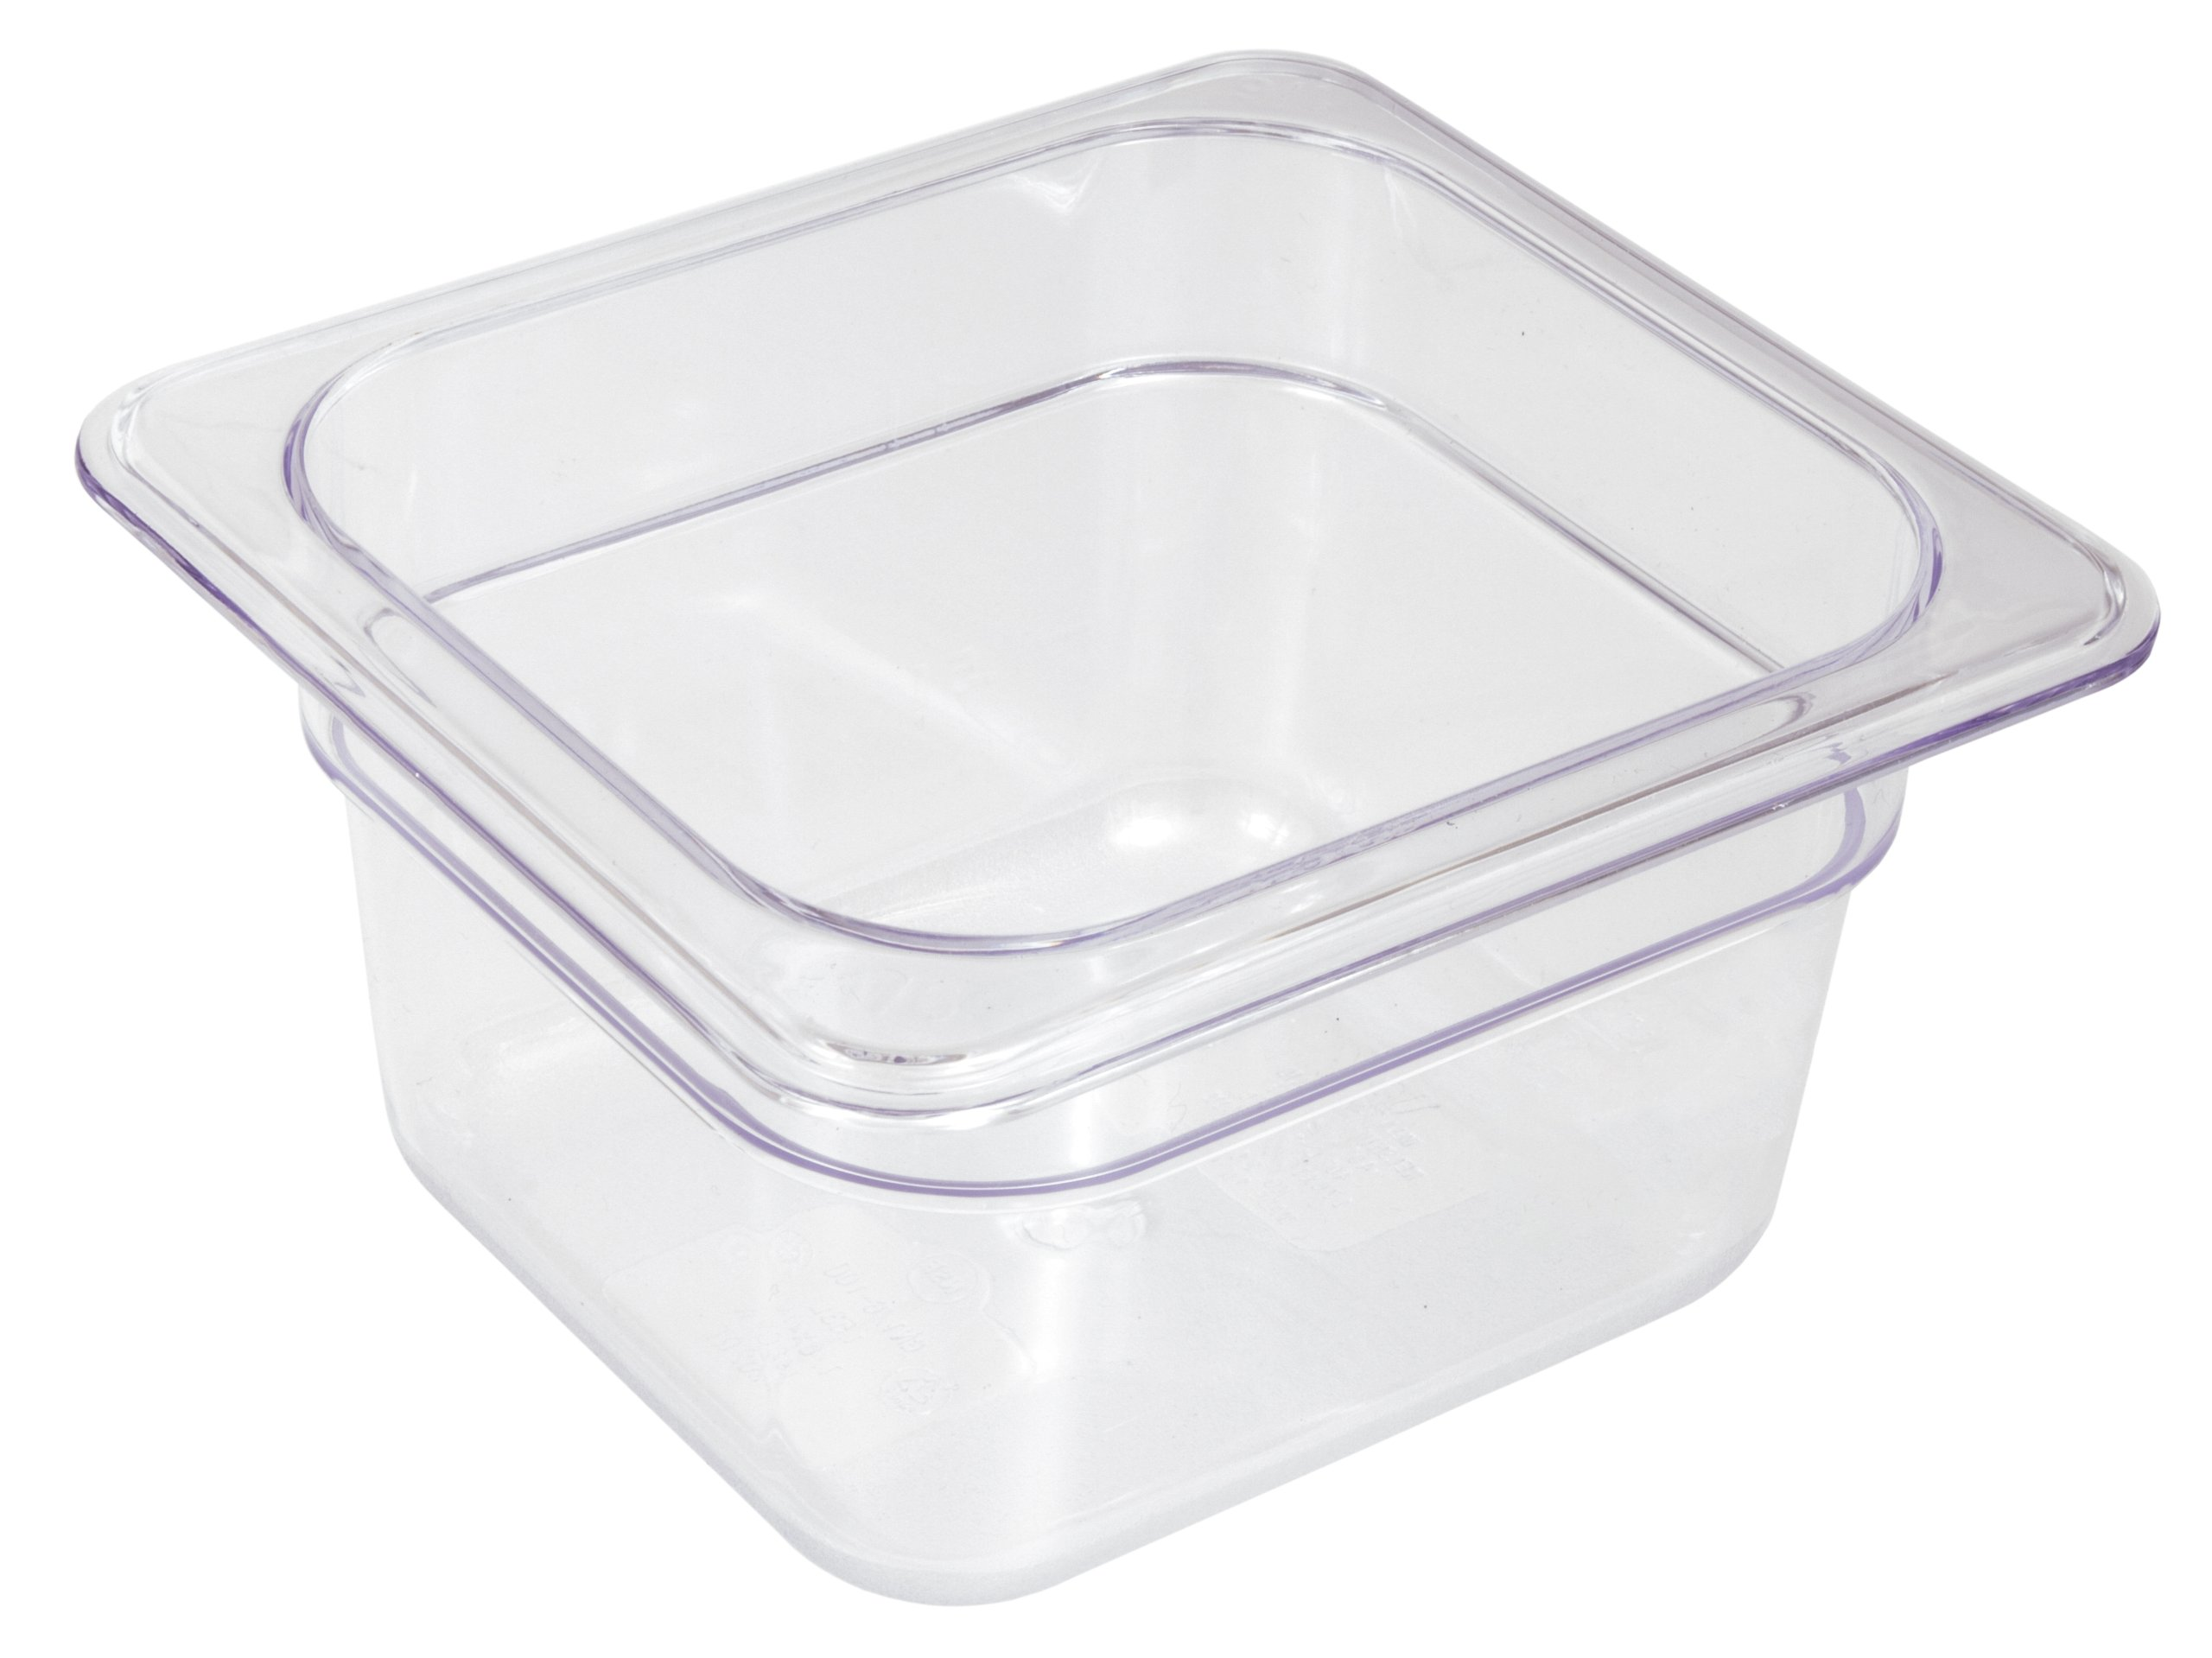 Crestware Commercial Grade, FP64, Polycarbonate Food Pan Sixth Size 4'', Set of 6